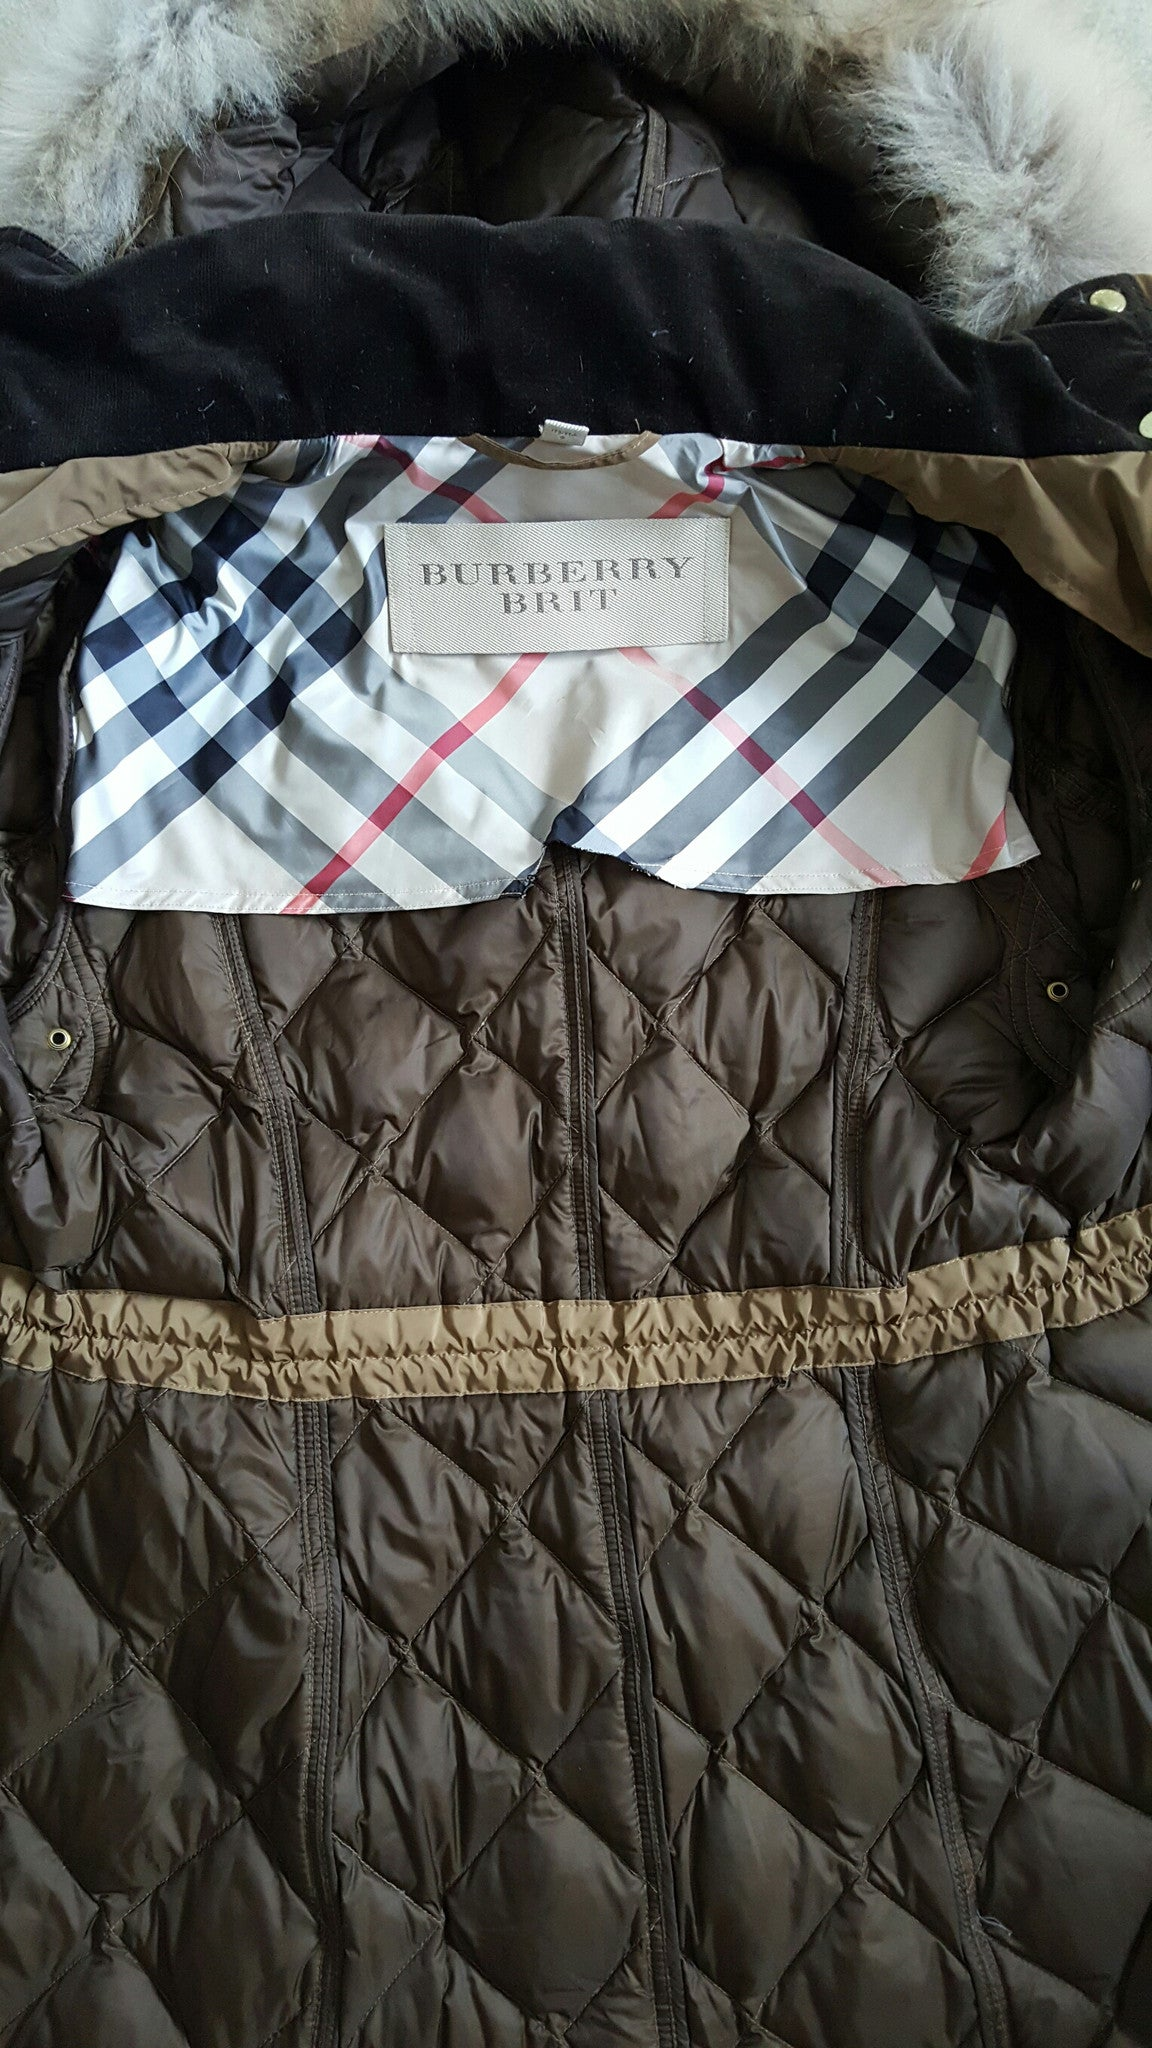 BURBERRY BRIT OLIVE GREEN DOWN JACKET WITH FUR TRIM COLLAR - SIZE LARGE